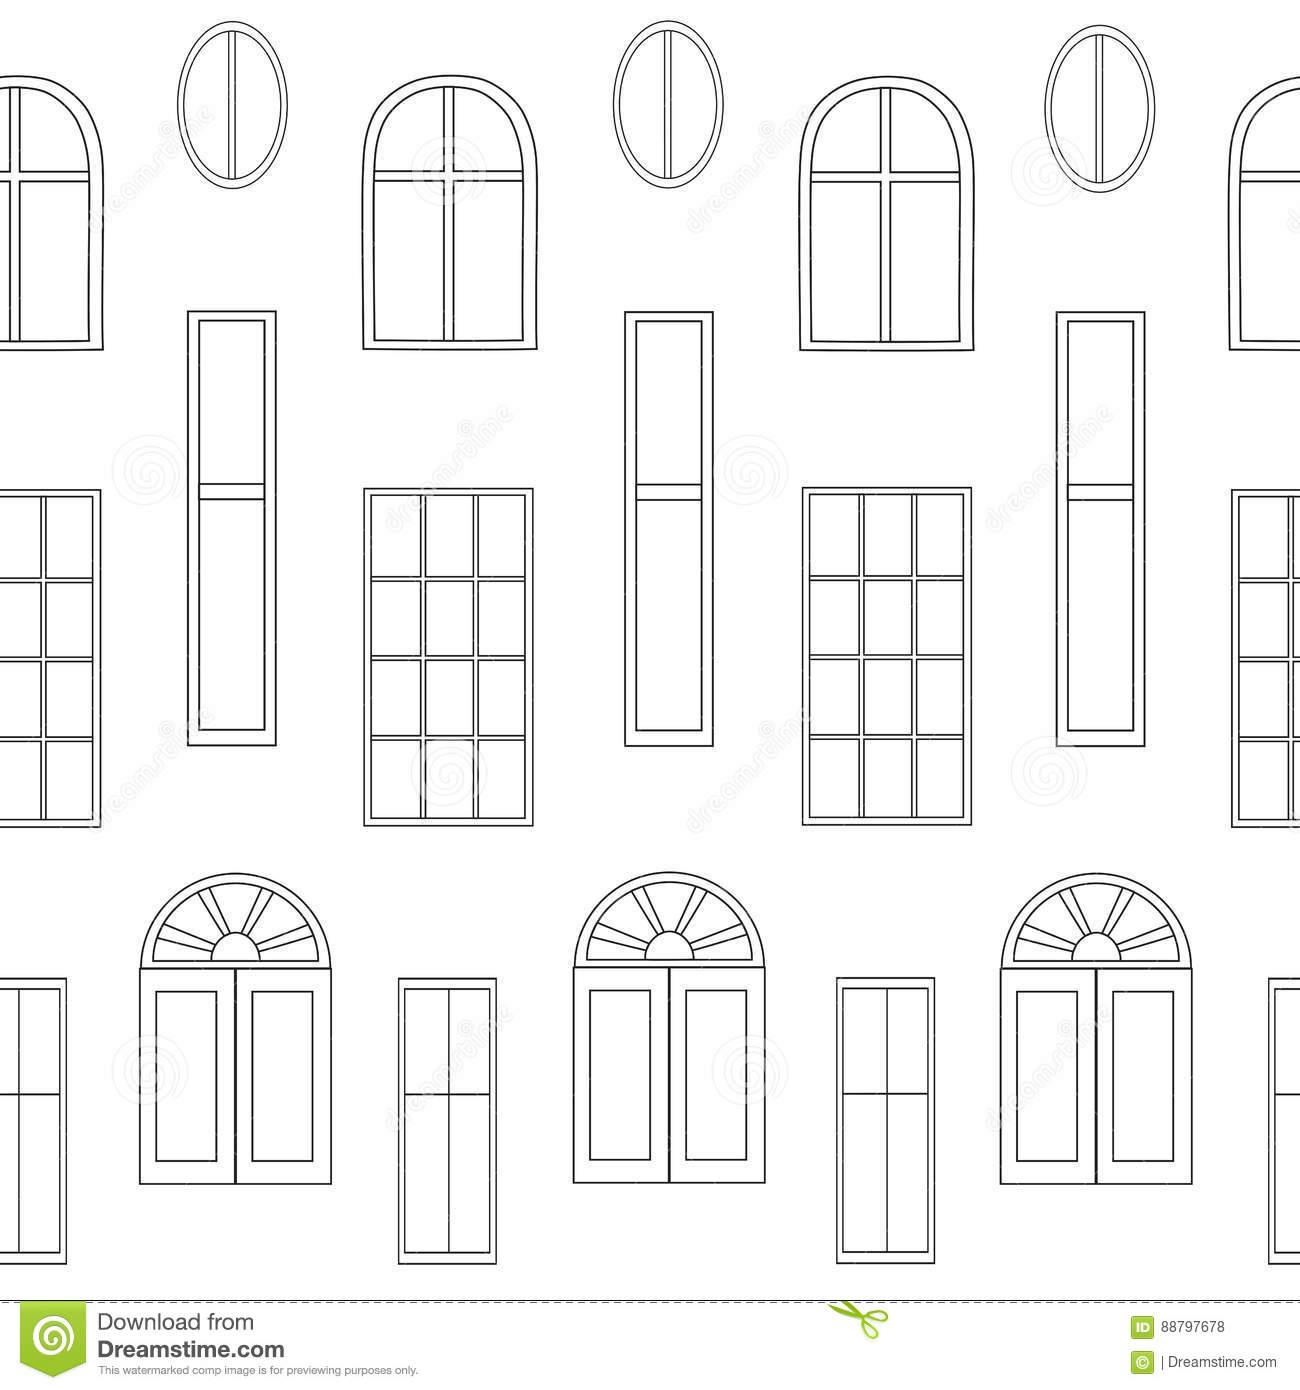 different types of windows stock vector illustration of template 88797678. Black Bedroom Furniture Sets. Home Design Ideas